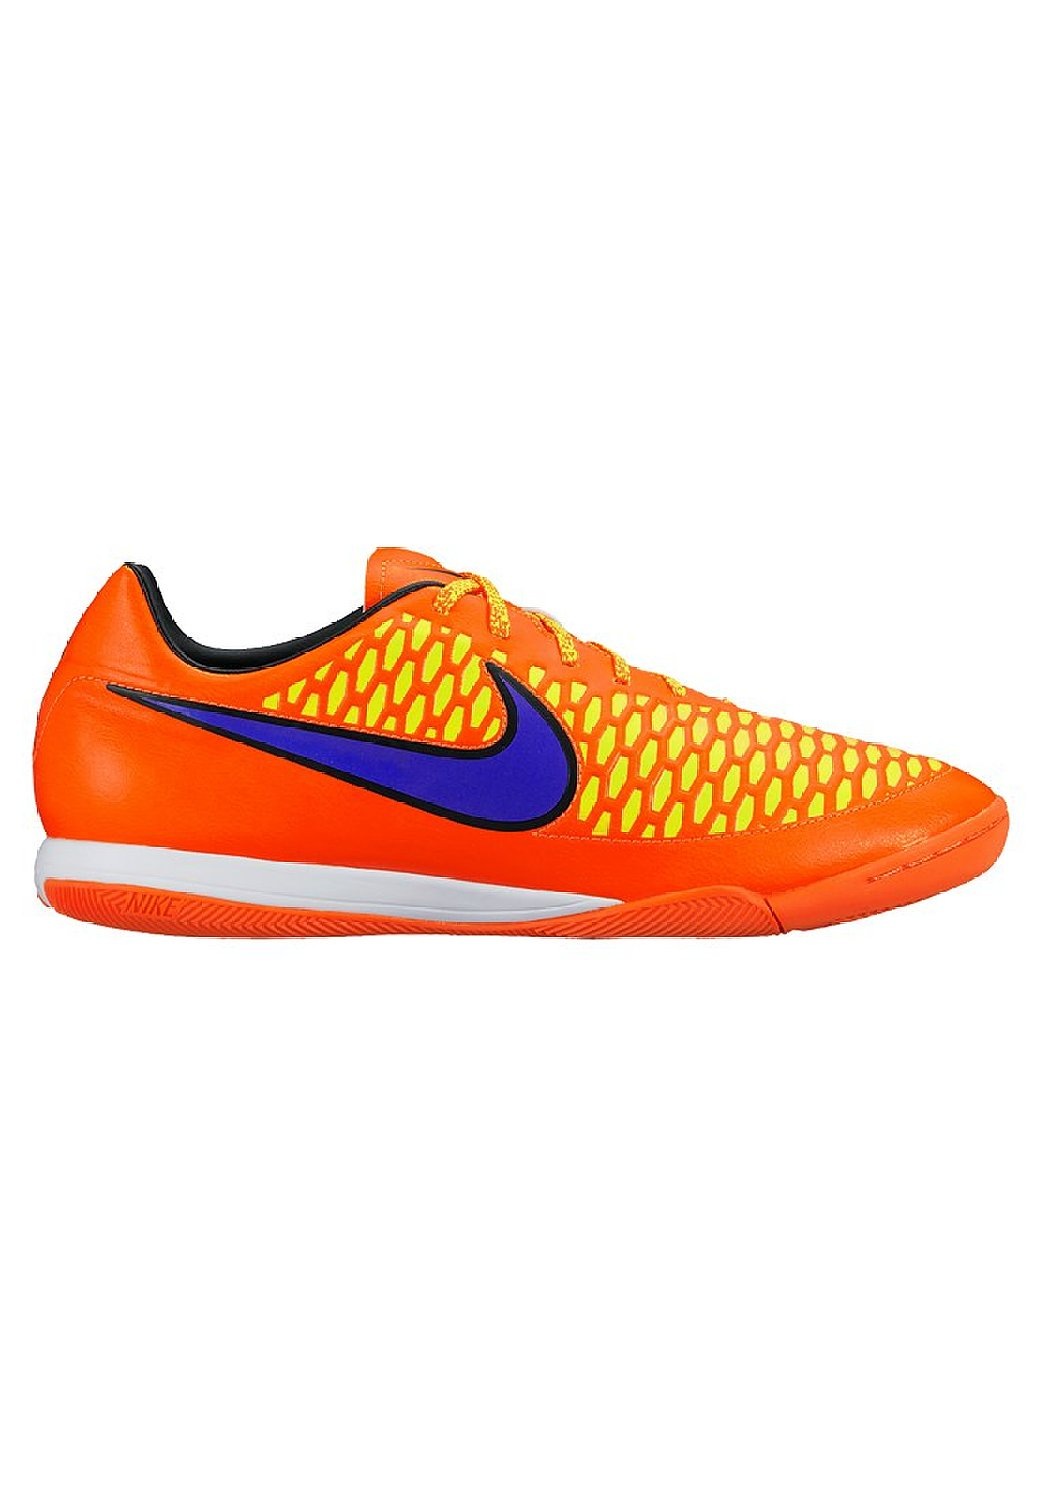 769223afe Get Quotations · Nike Mens Magista Onda IC Indoor Soccer Shoes 10 1 2 US